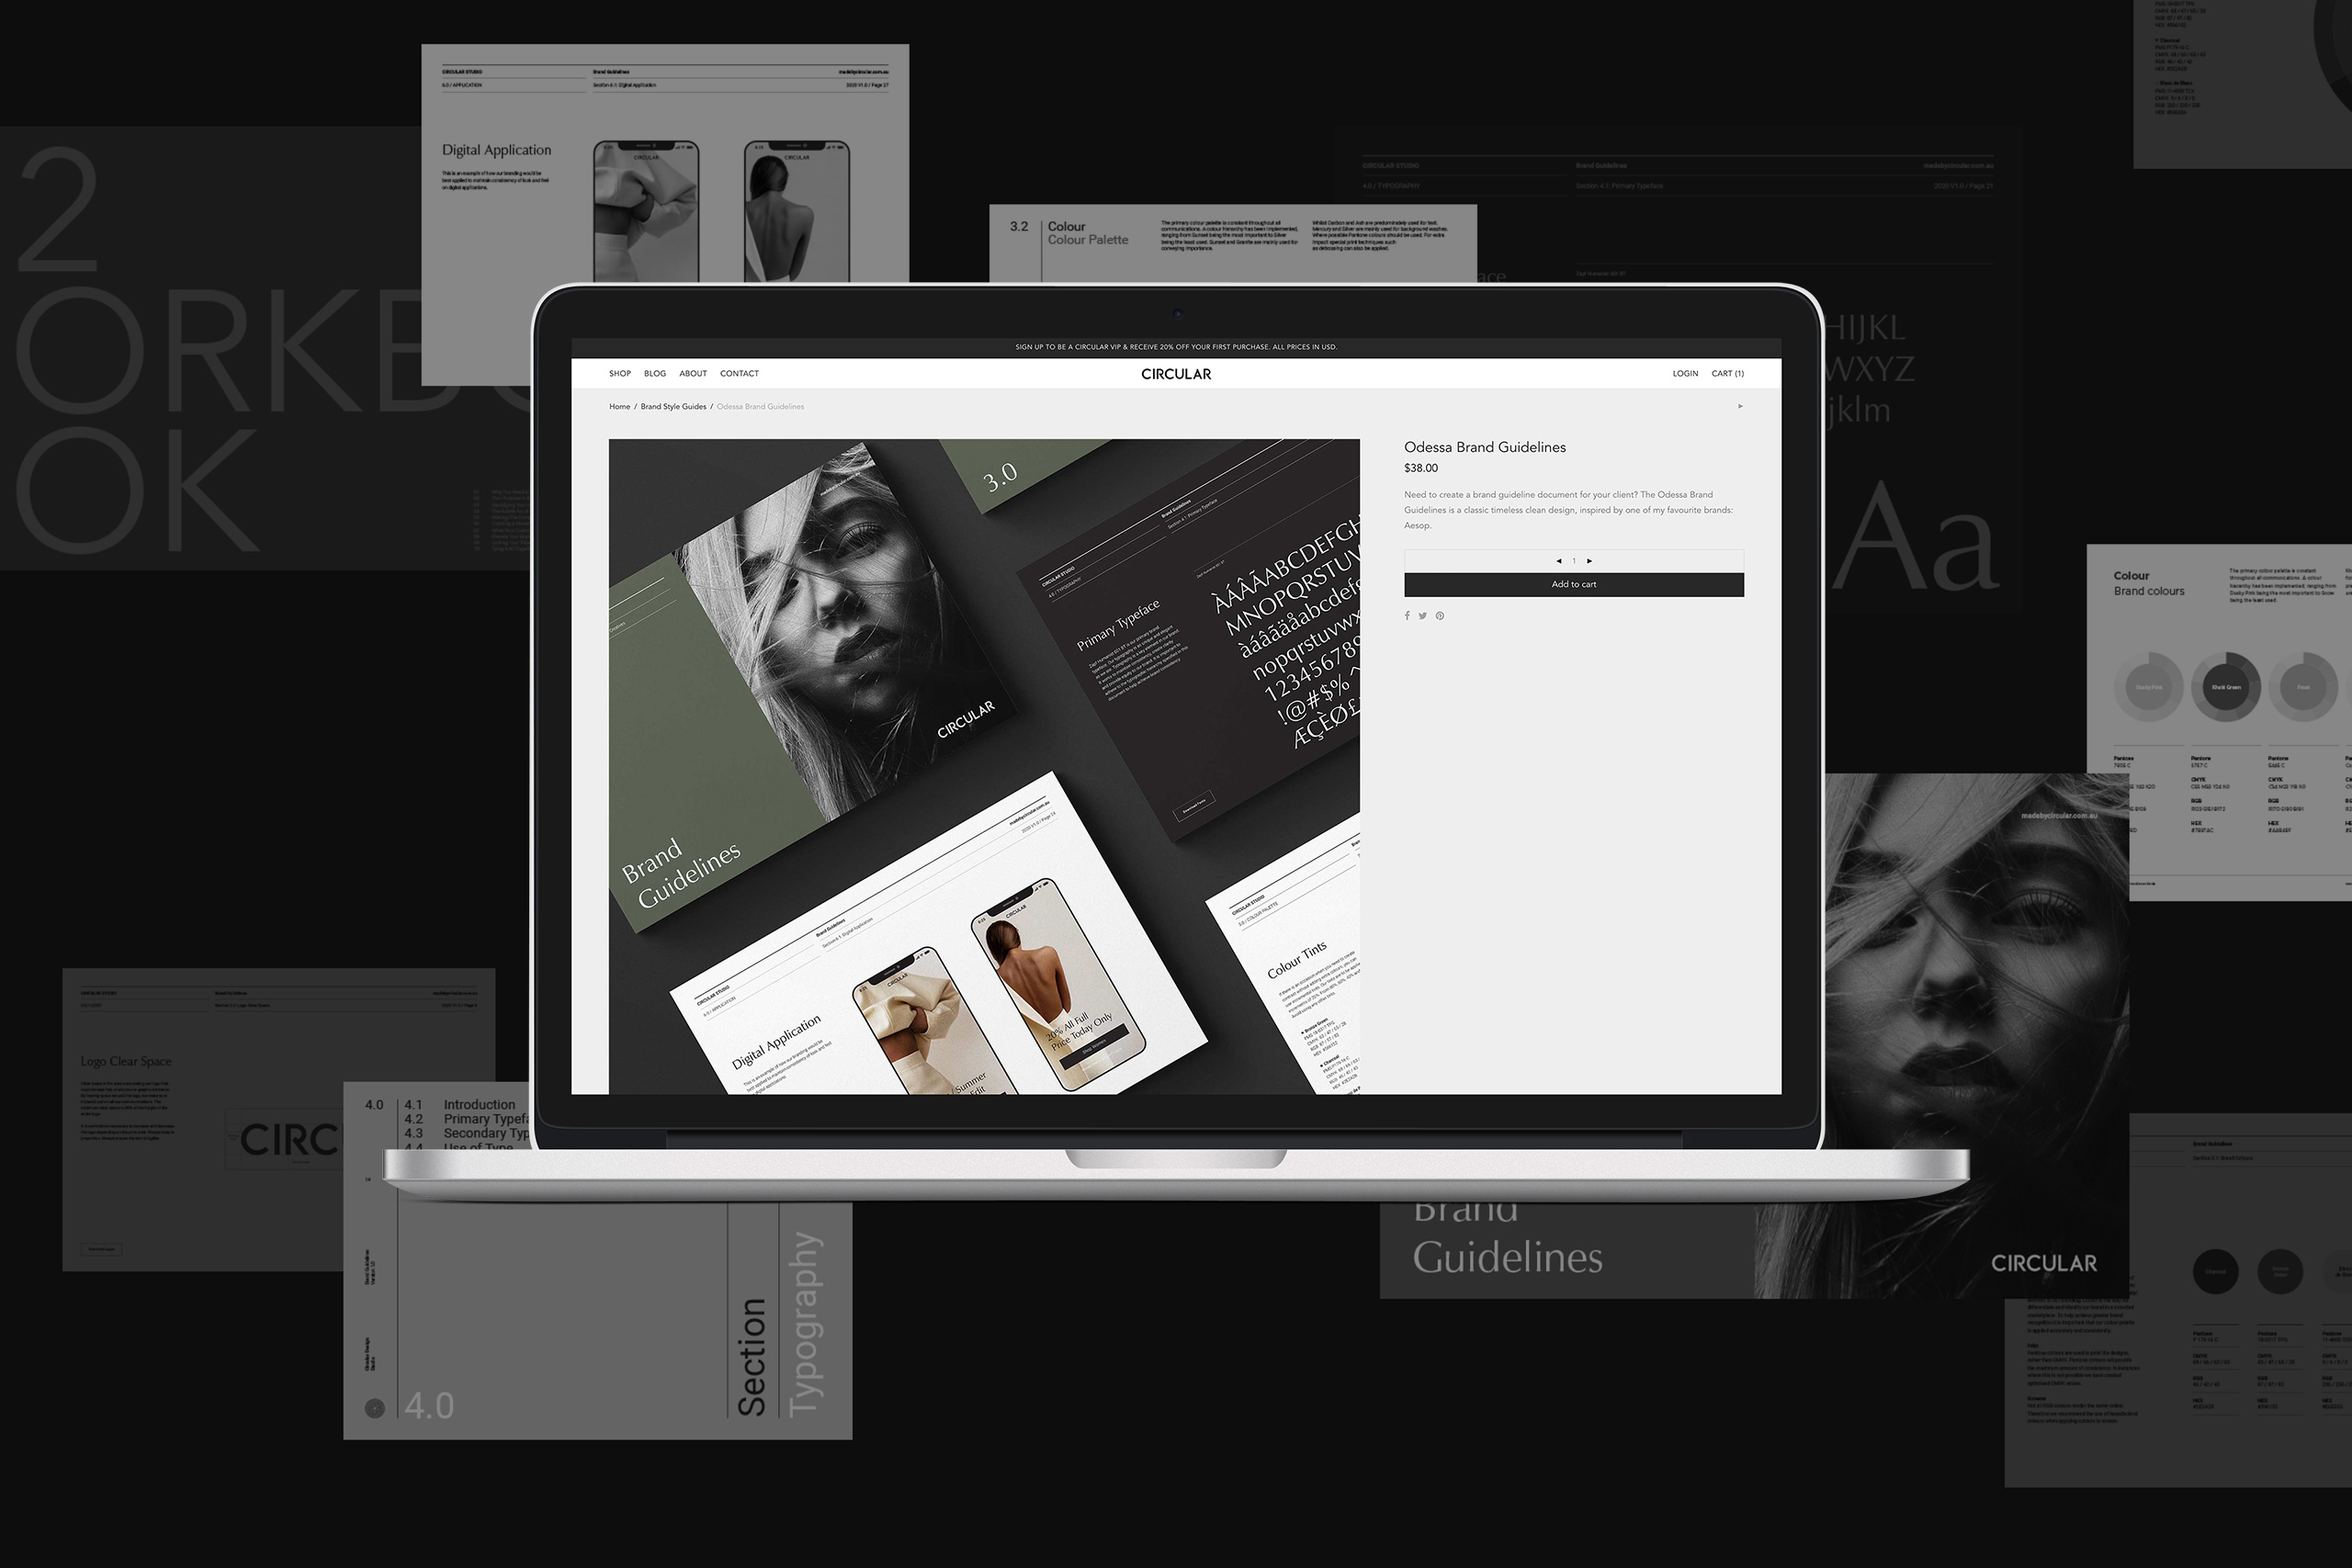 Made by Circular Web design and development project.